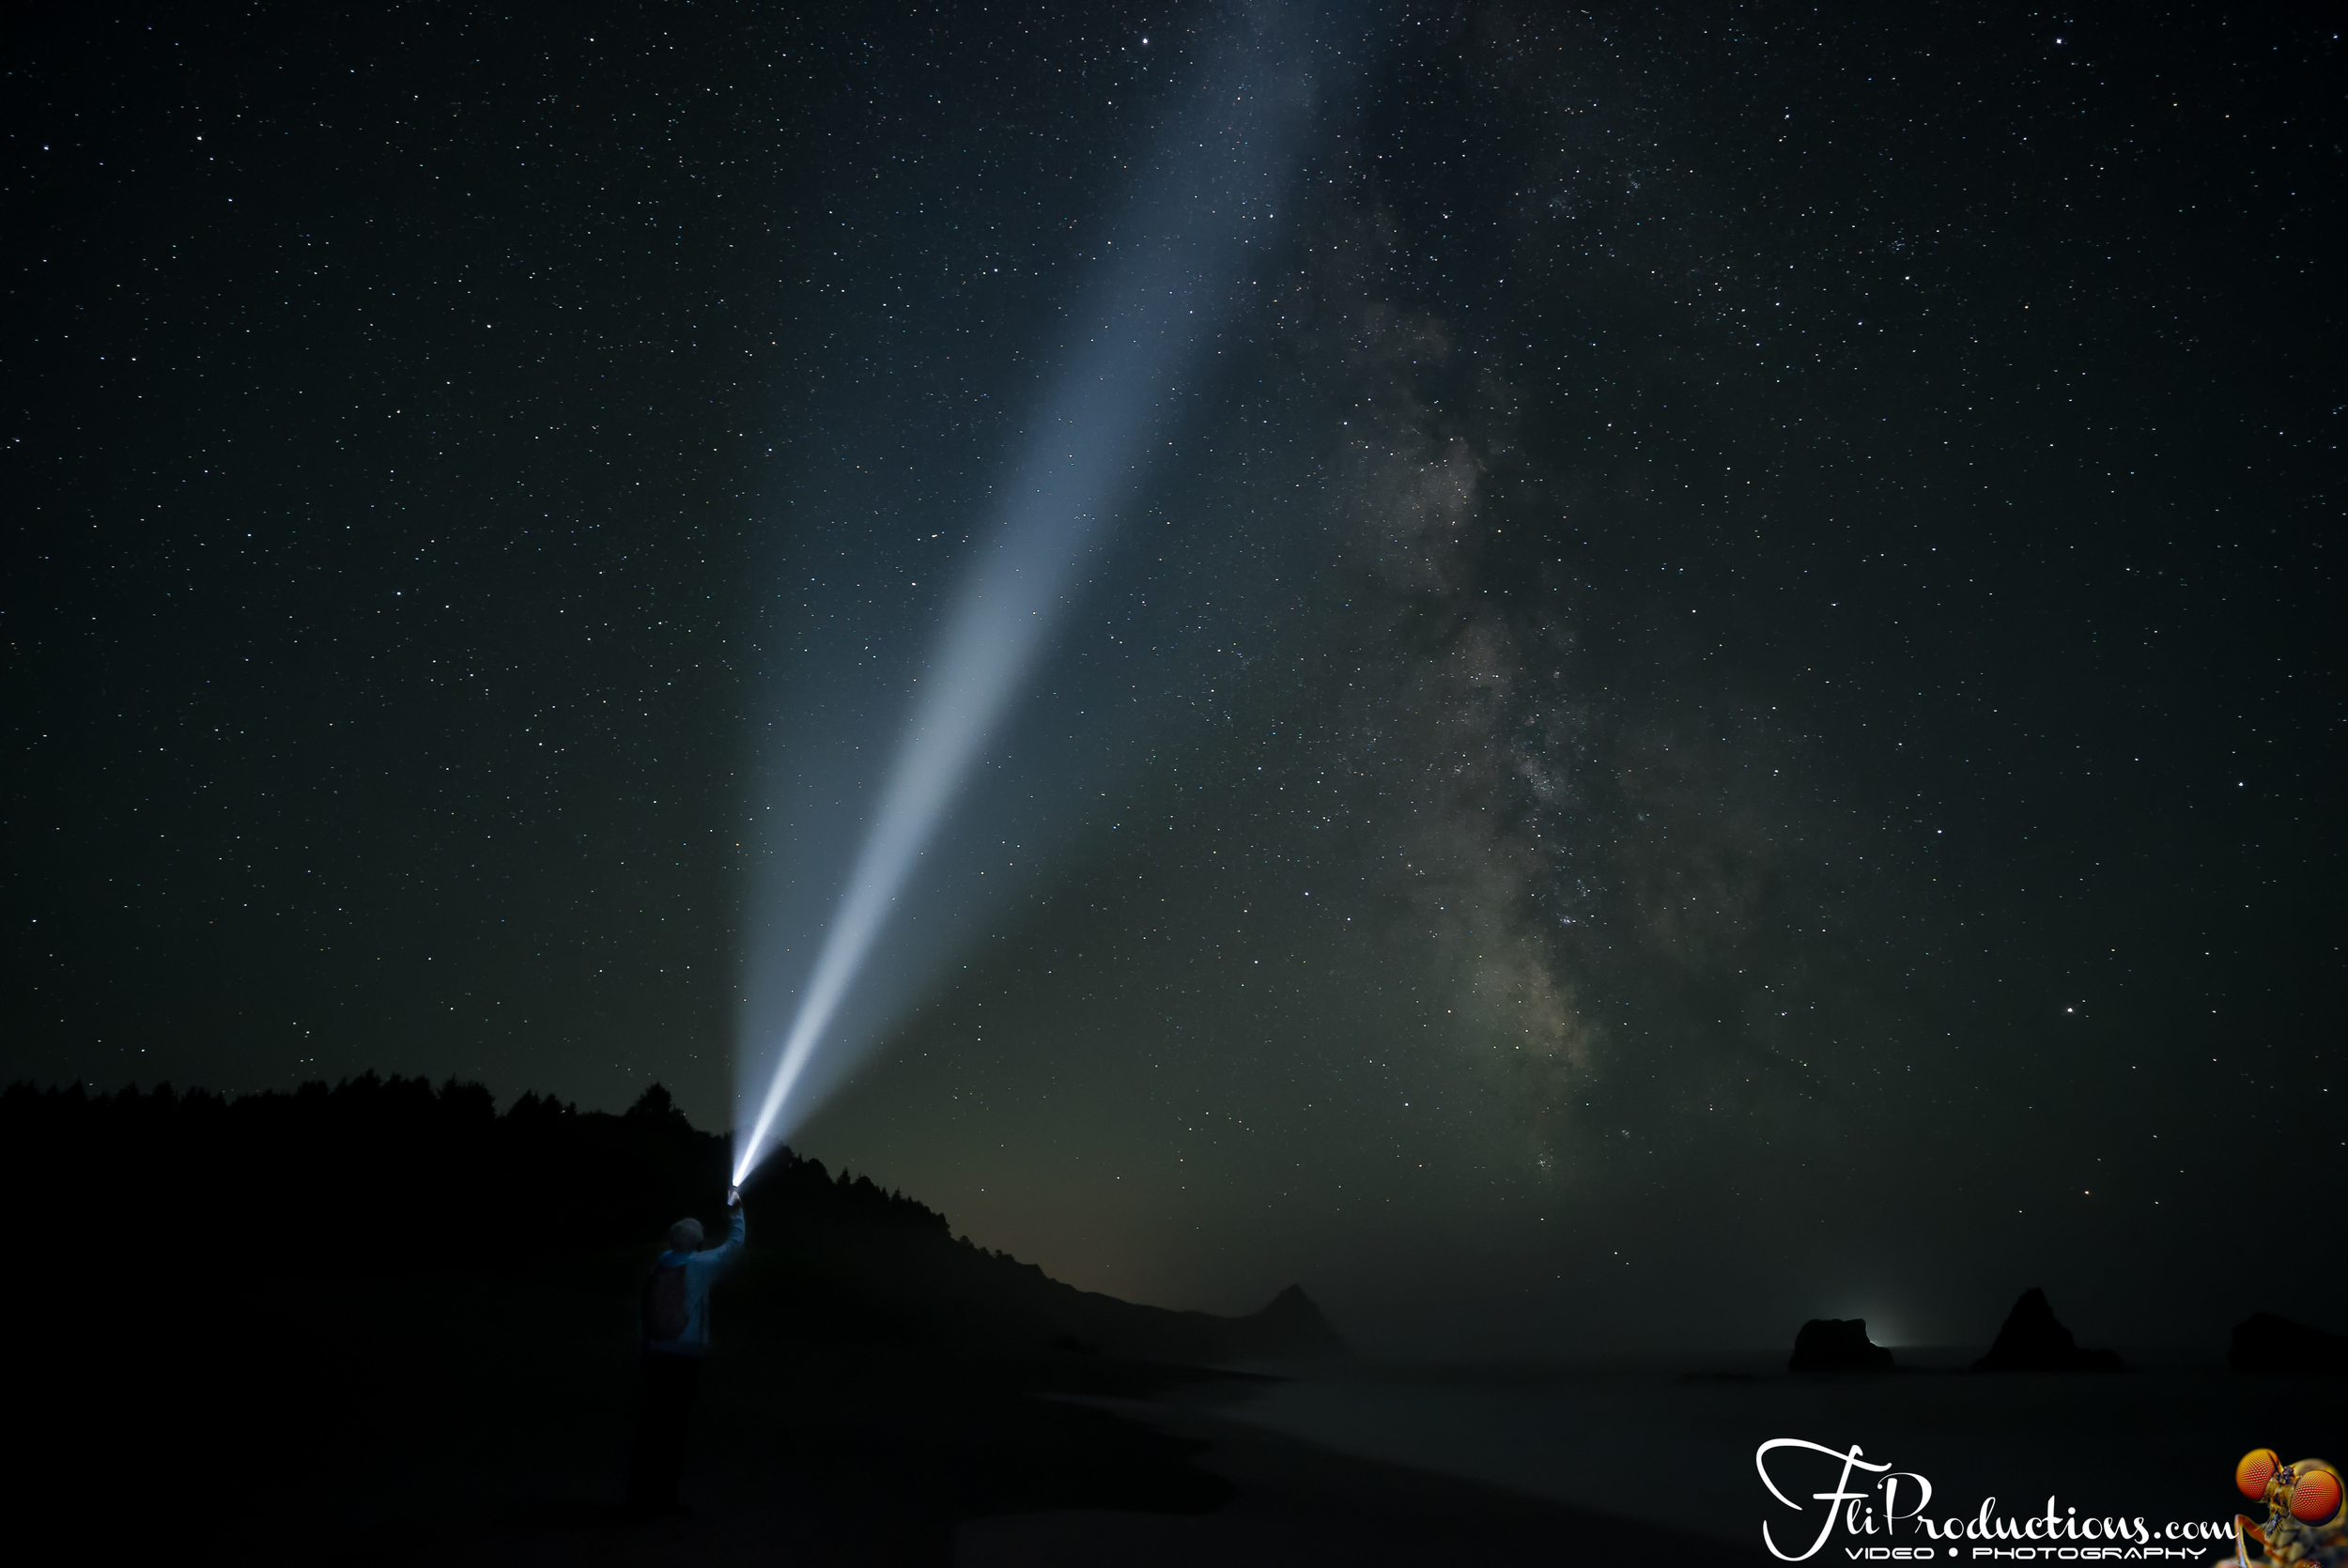 Sharp Point Astrophotography - Dry Lagoon State Park California